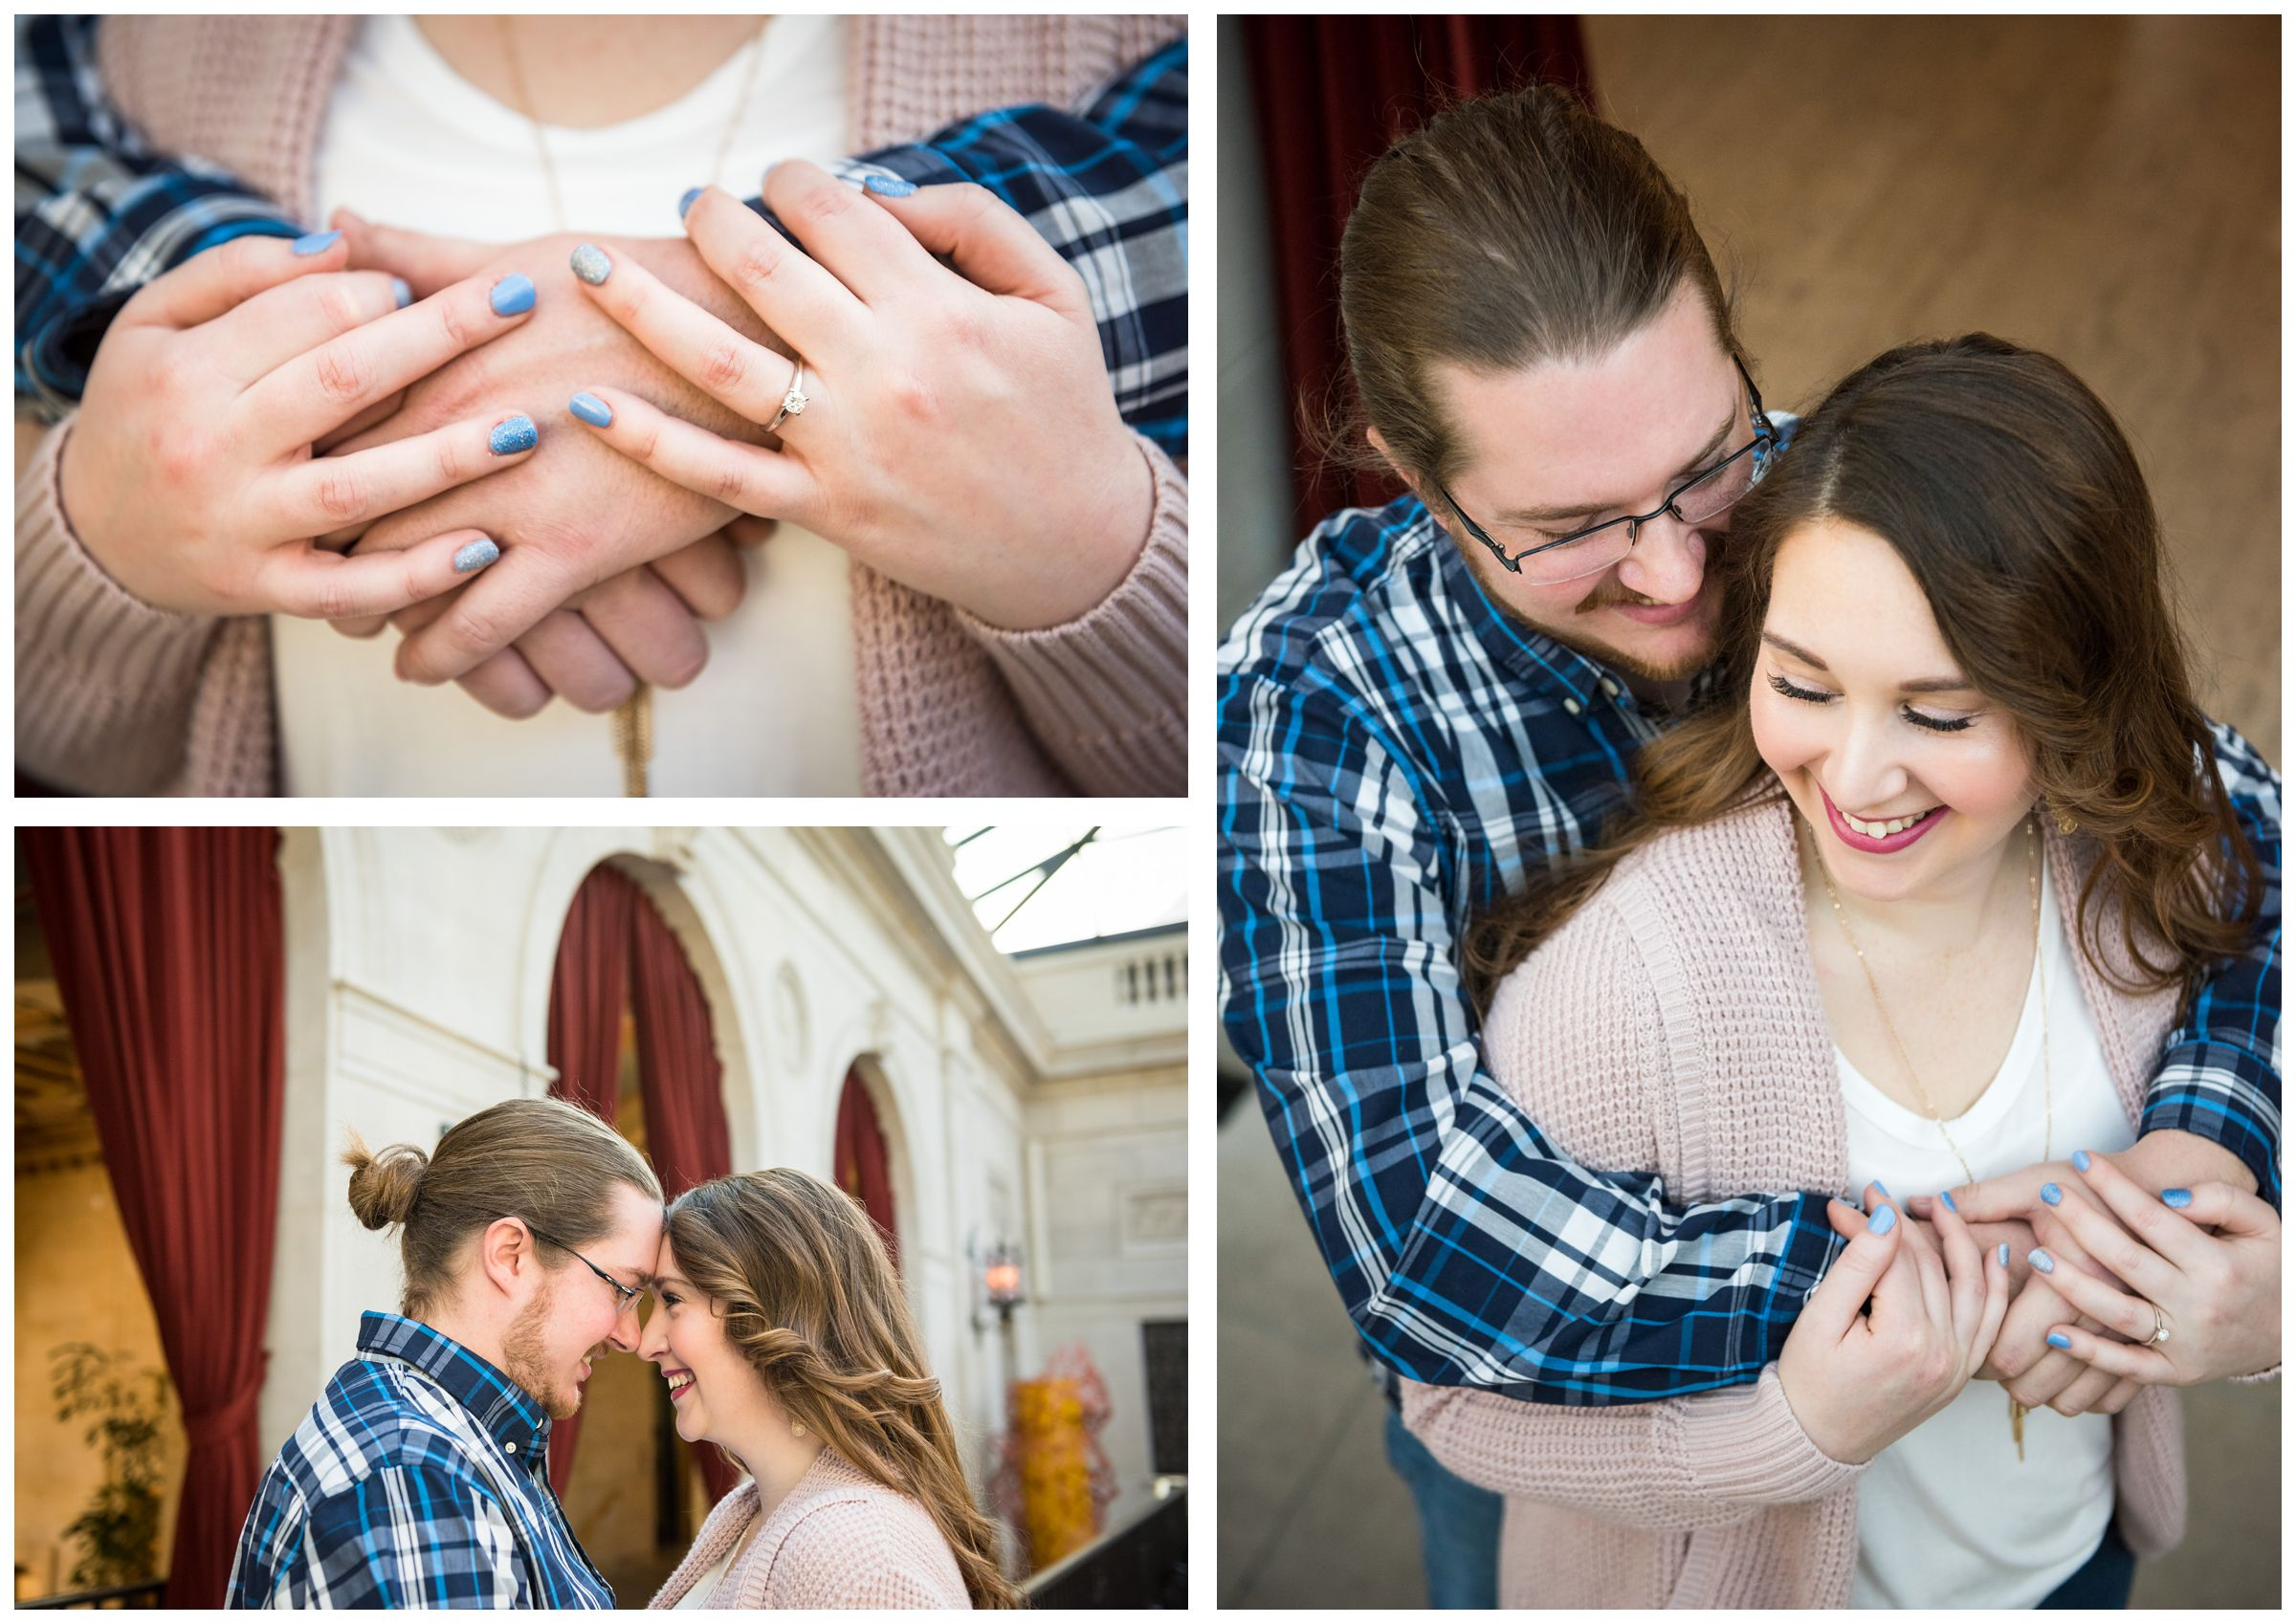 couple embracing during indoor photo session